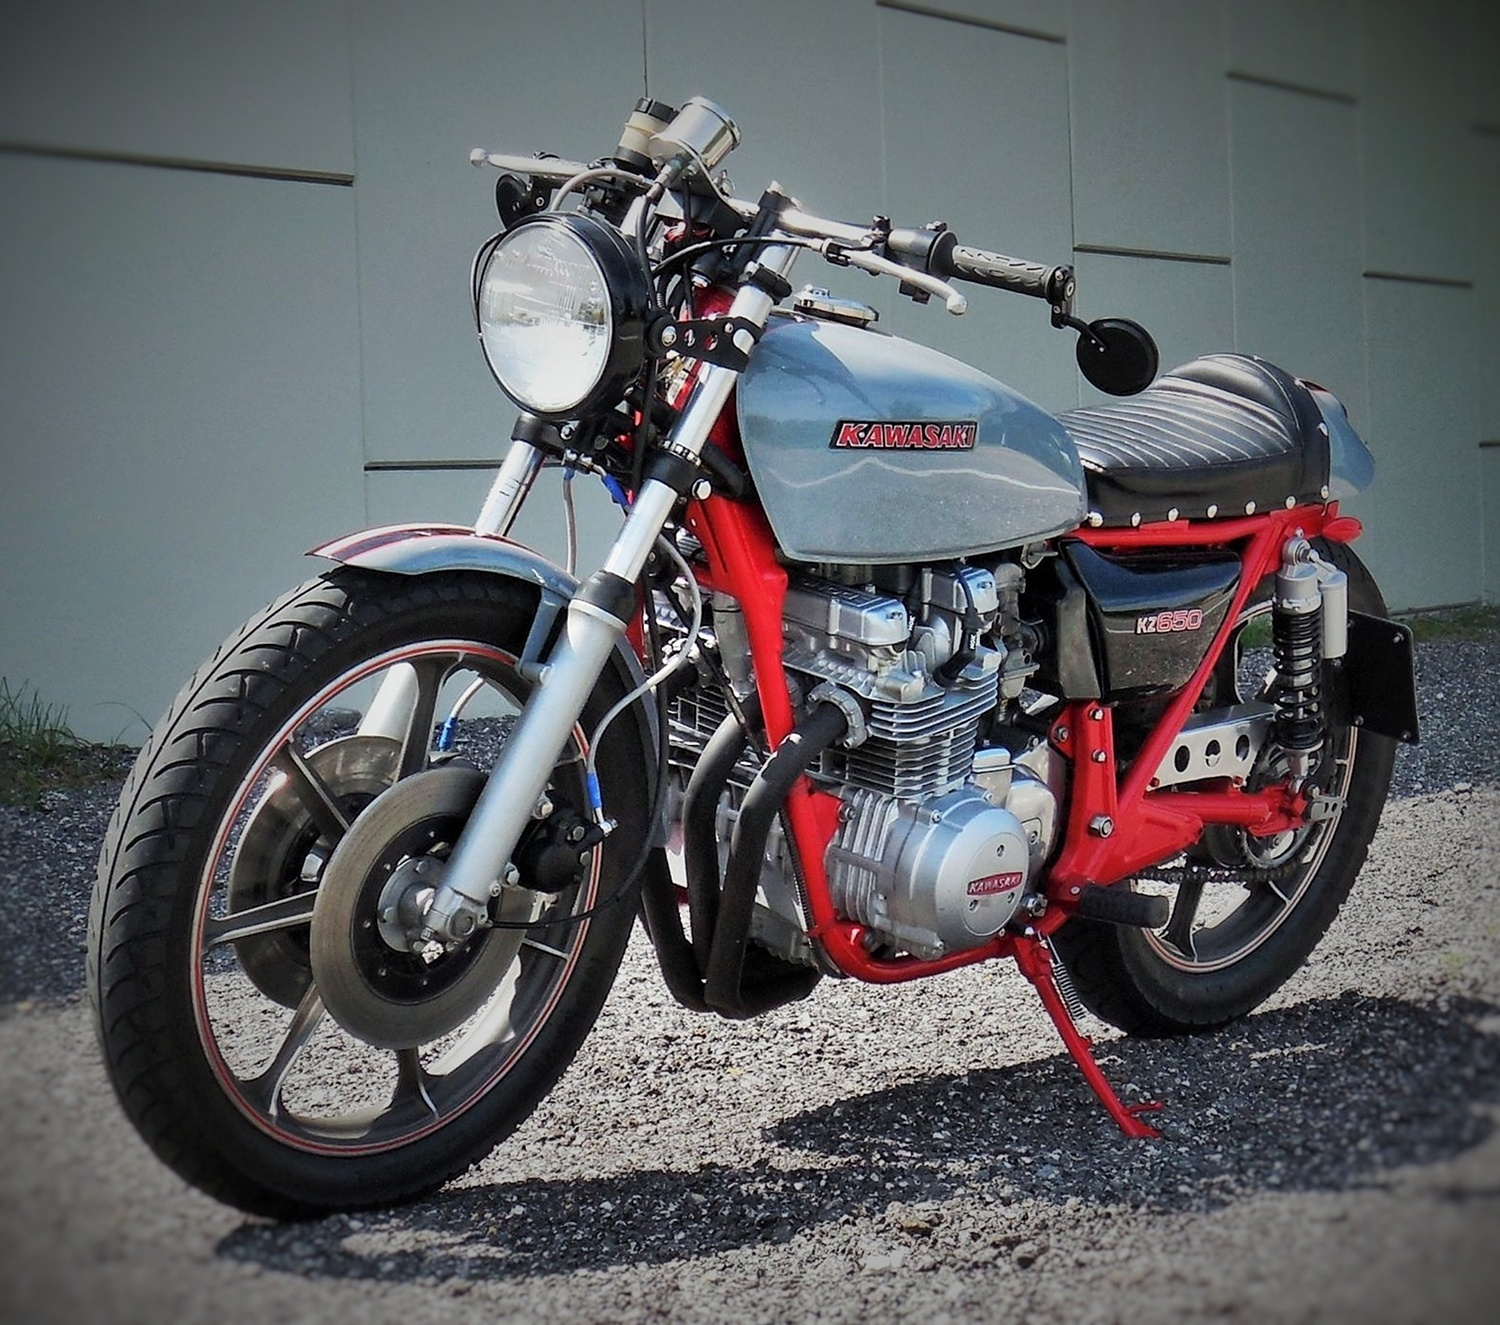 Kawasaki KZ650 Cafe Racer By Toby Jones